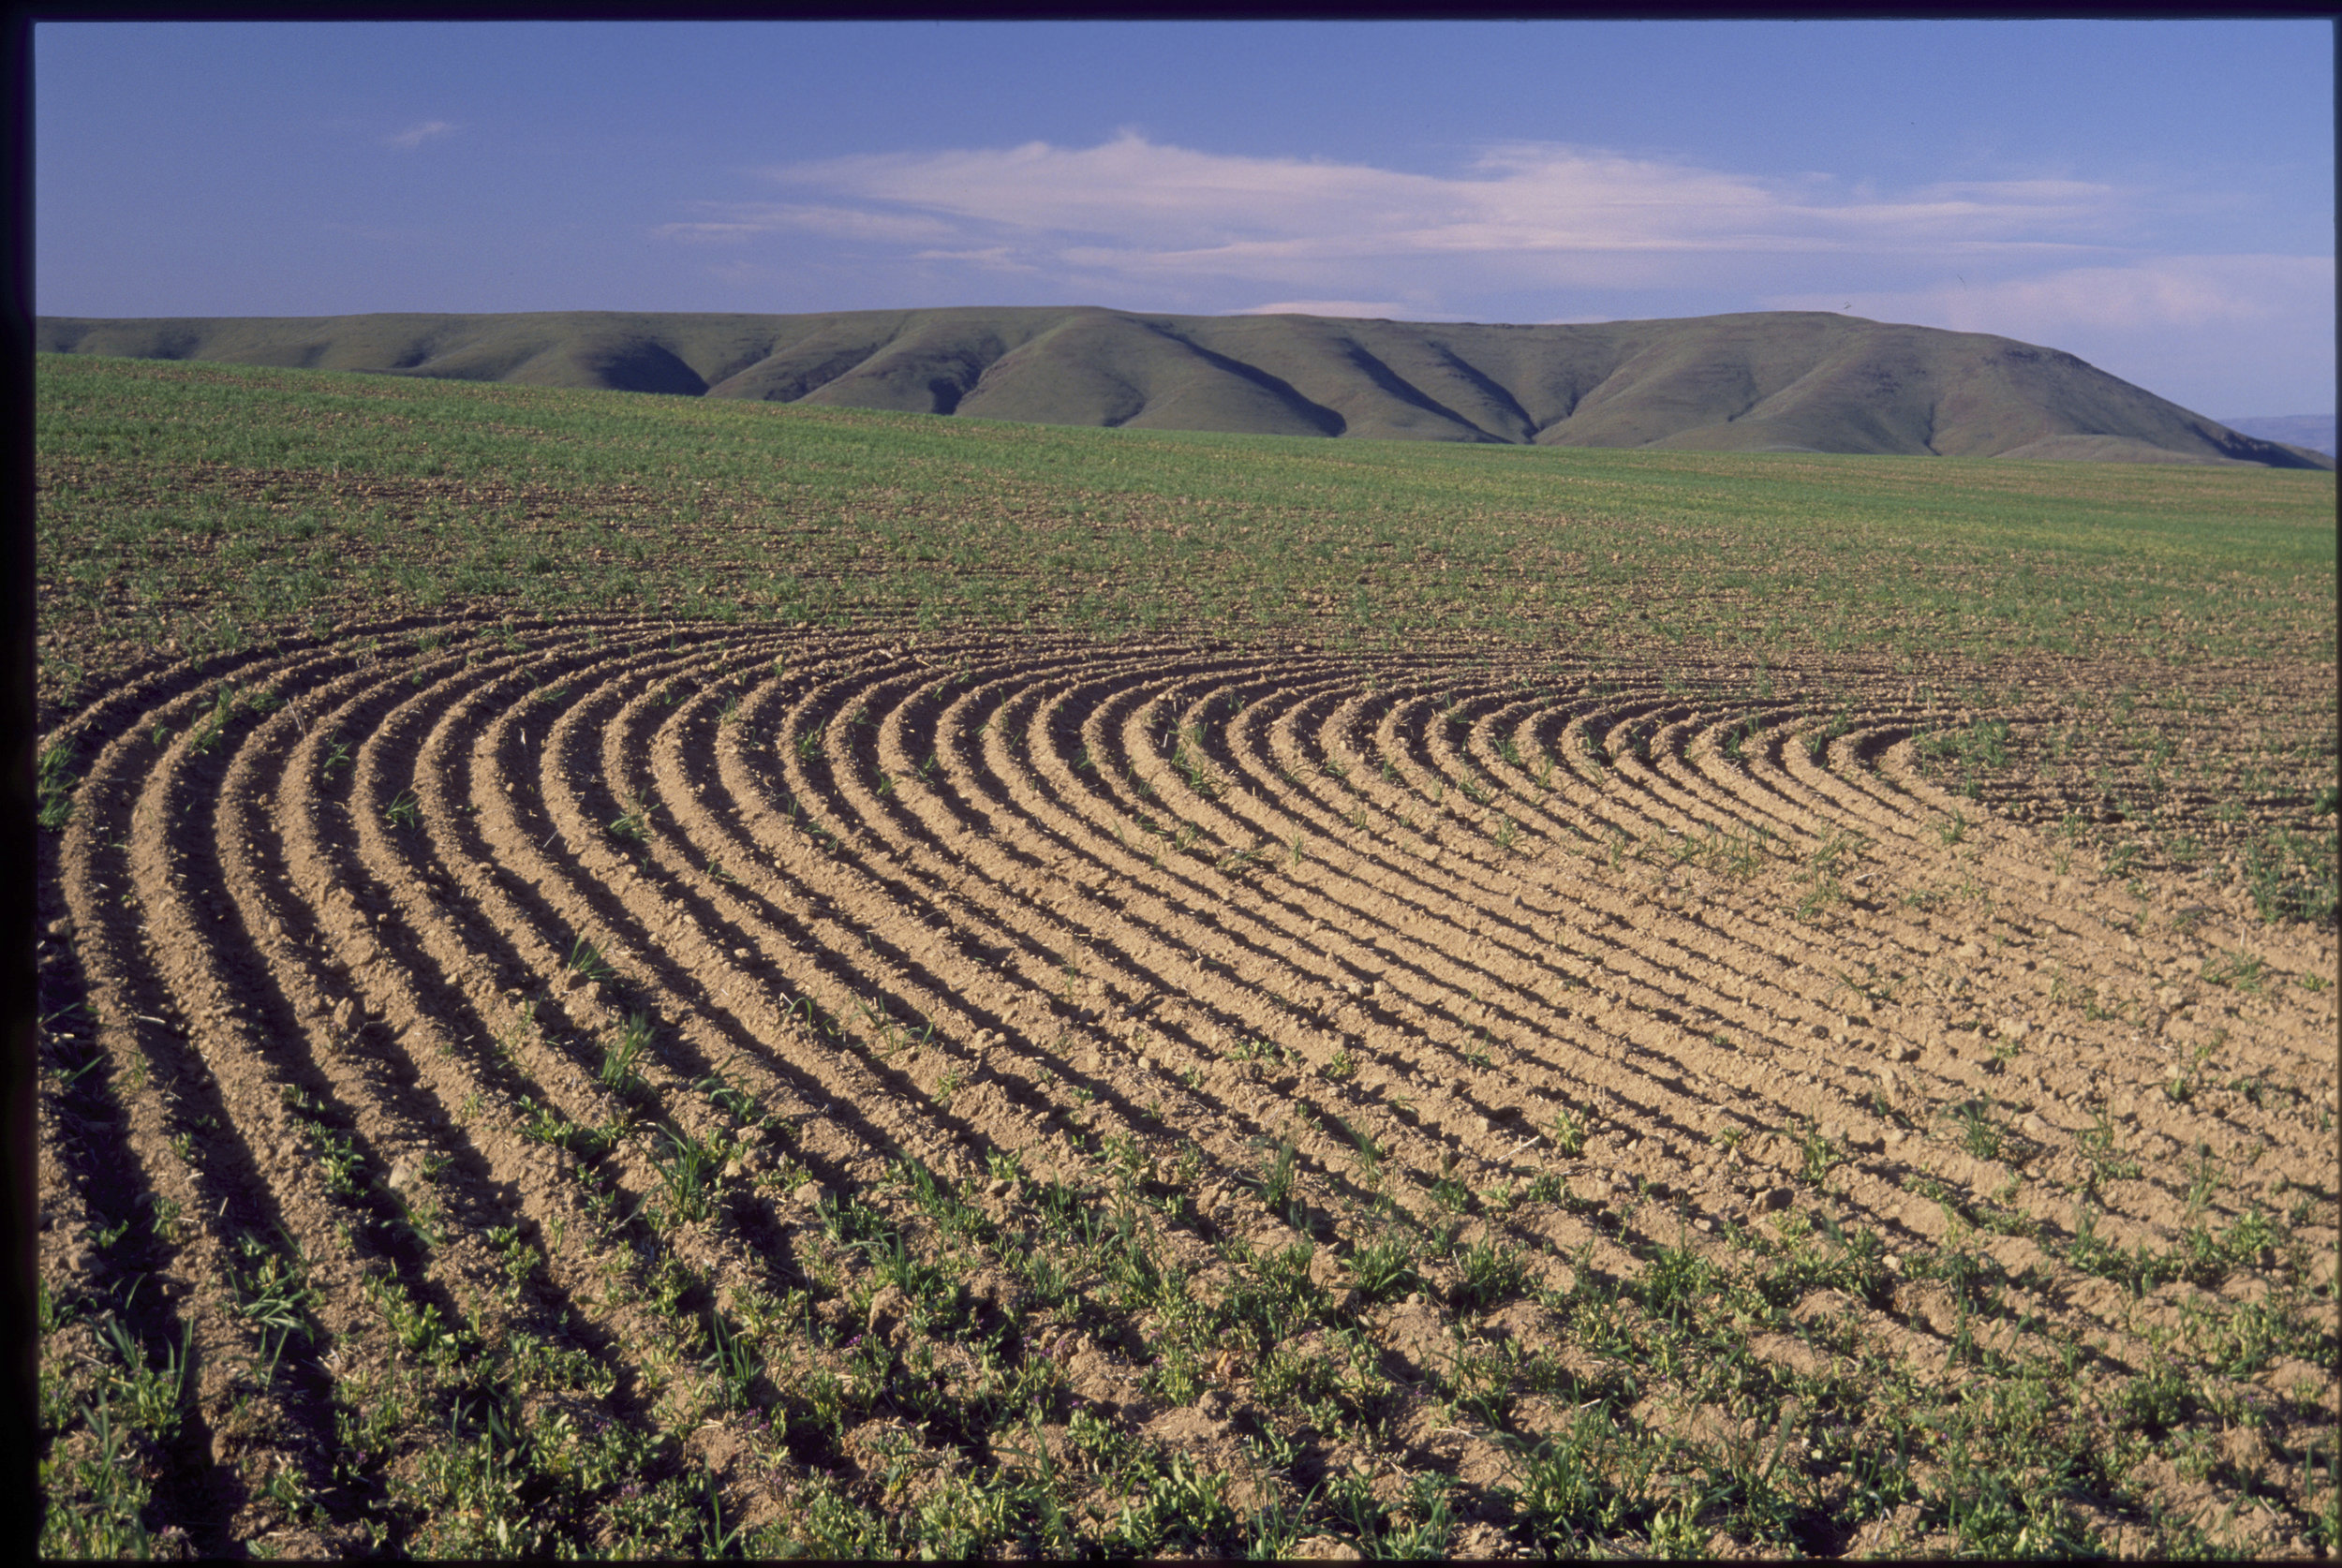 Agriculture in Washington's shrub-steppe. Photo by Keith Lazelle.